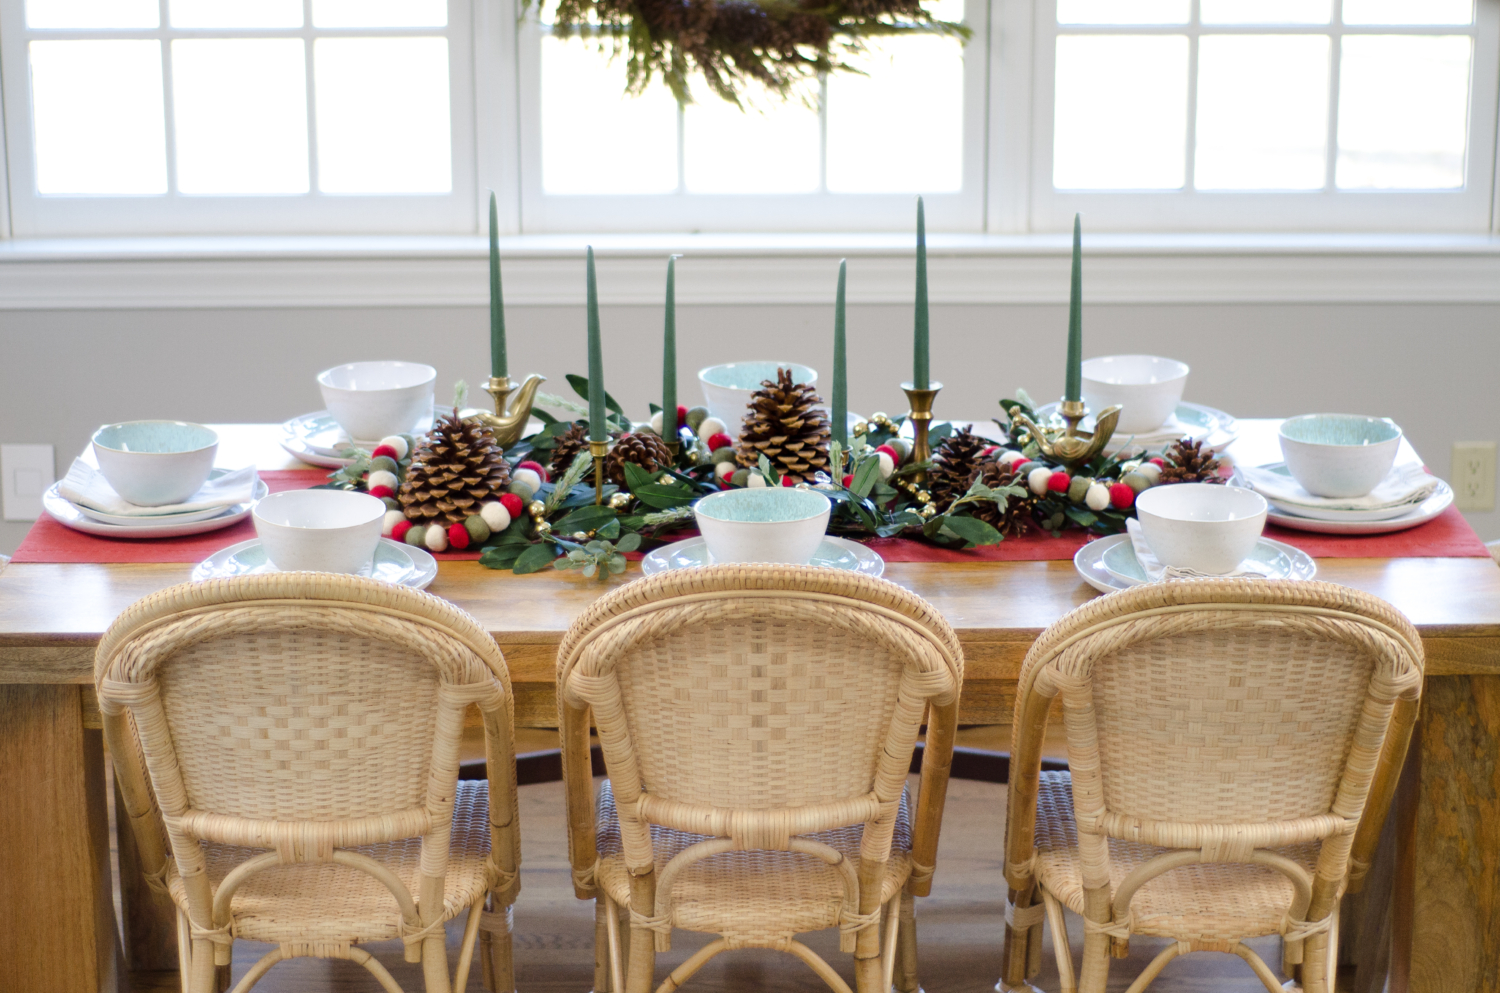 Neutral Christmas table setting in the kitchen featuring preserved cedar garland and a wreath, sunwashed Riviera side chairs, and woven rope armchairs.